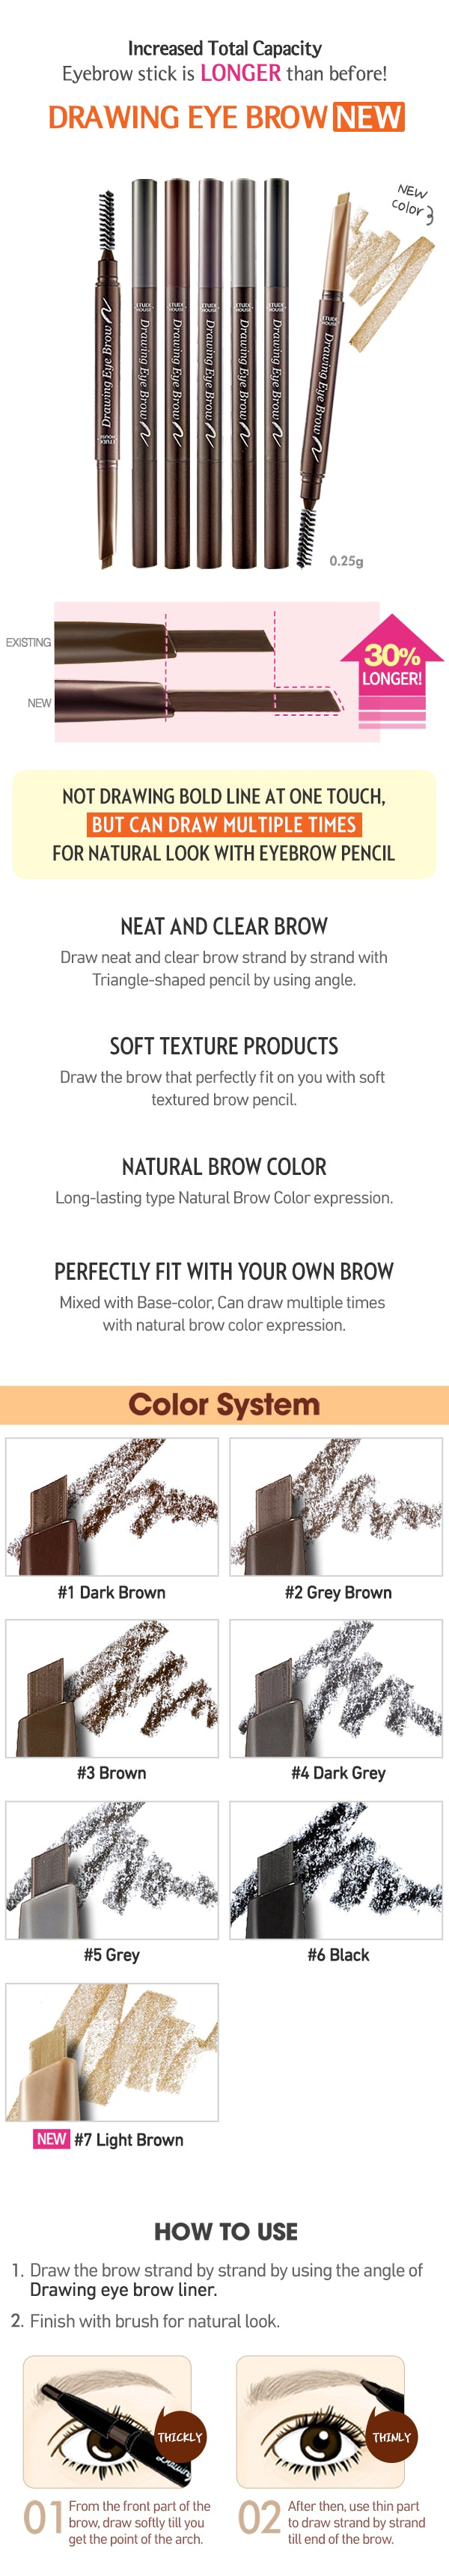 Etude House Drawing Eye Brow Makeup World Pakistan Eyebrow New Buy 1 Get Triangle Shaped Pencil Enables A Delicate 2 Moisture With Vitamin E Soften The Eyebrows 3 Great Temperature Resistance And Proper Hardness